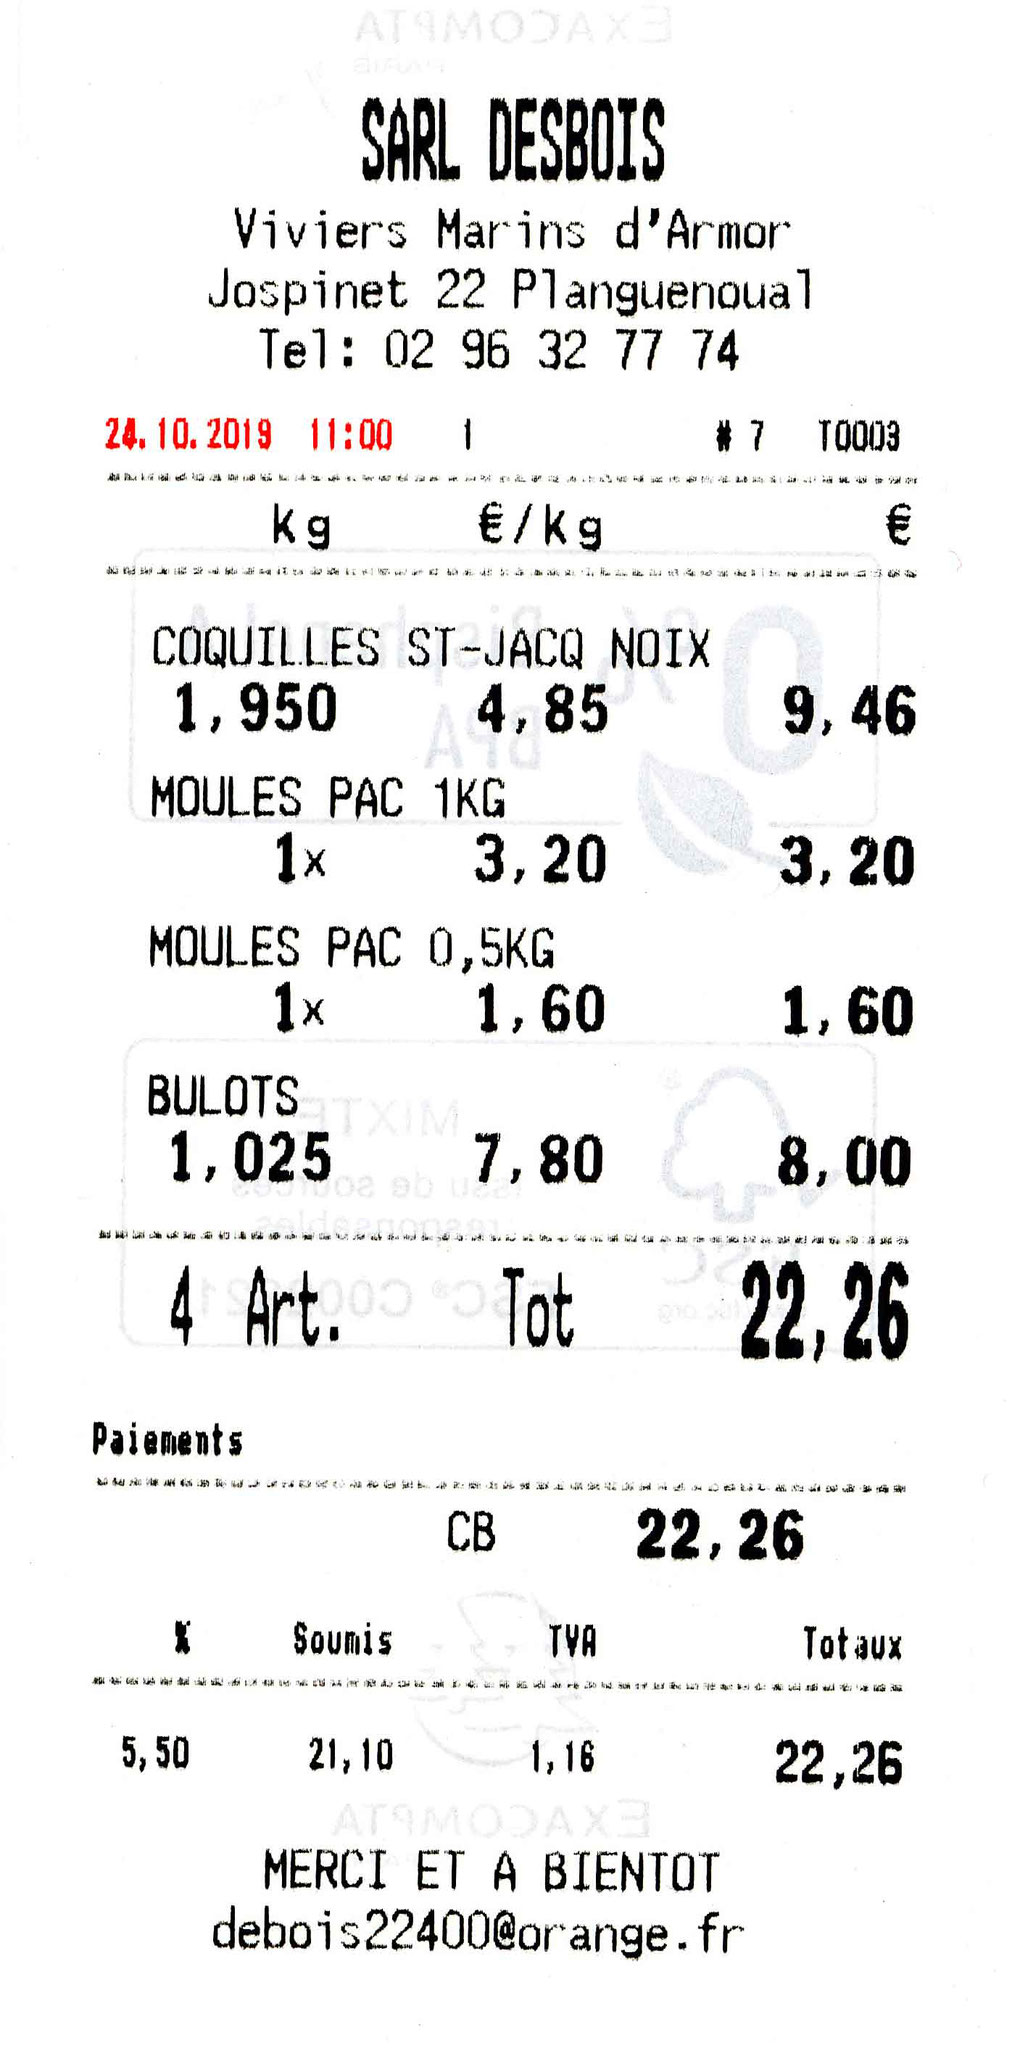 Le ticket de caisse du 24 octobre 2019